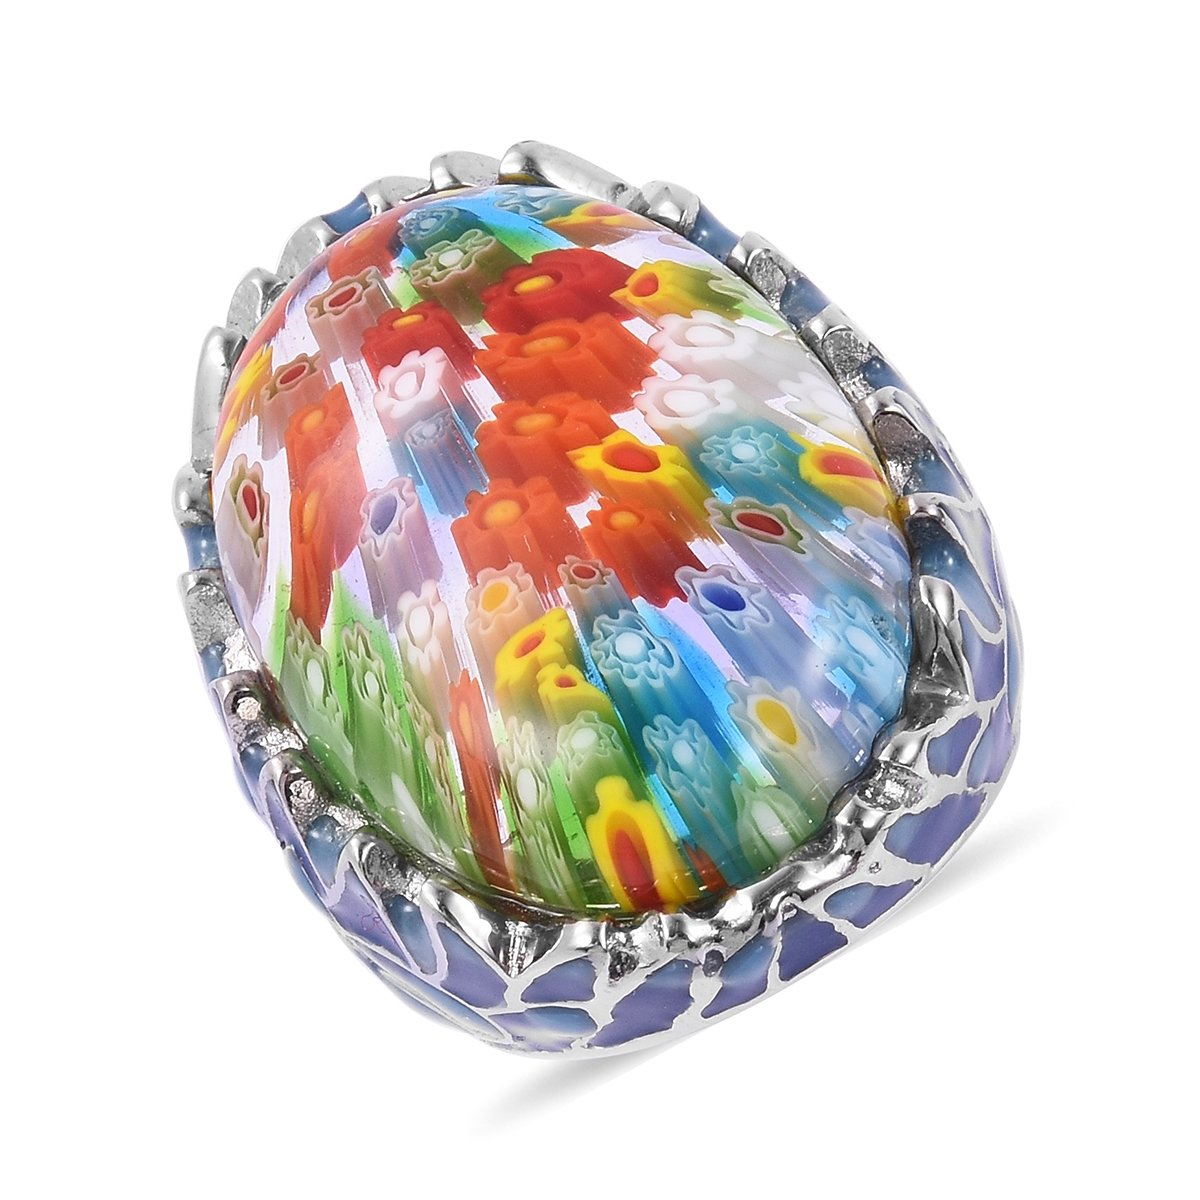 Stainless Steel Oval Glass Fashion Ring For Women Size 7